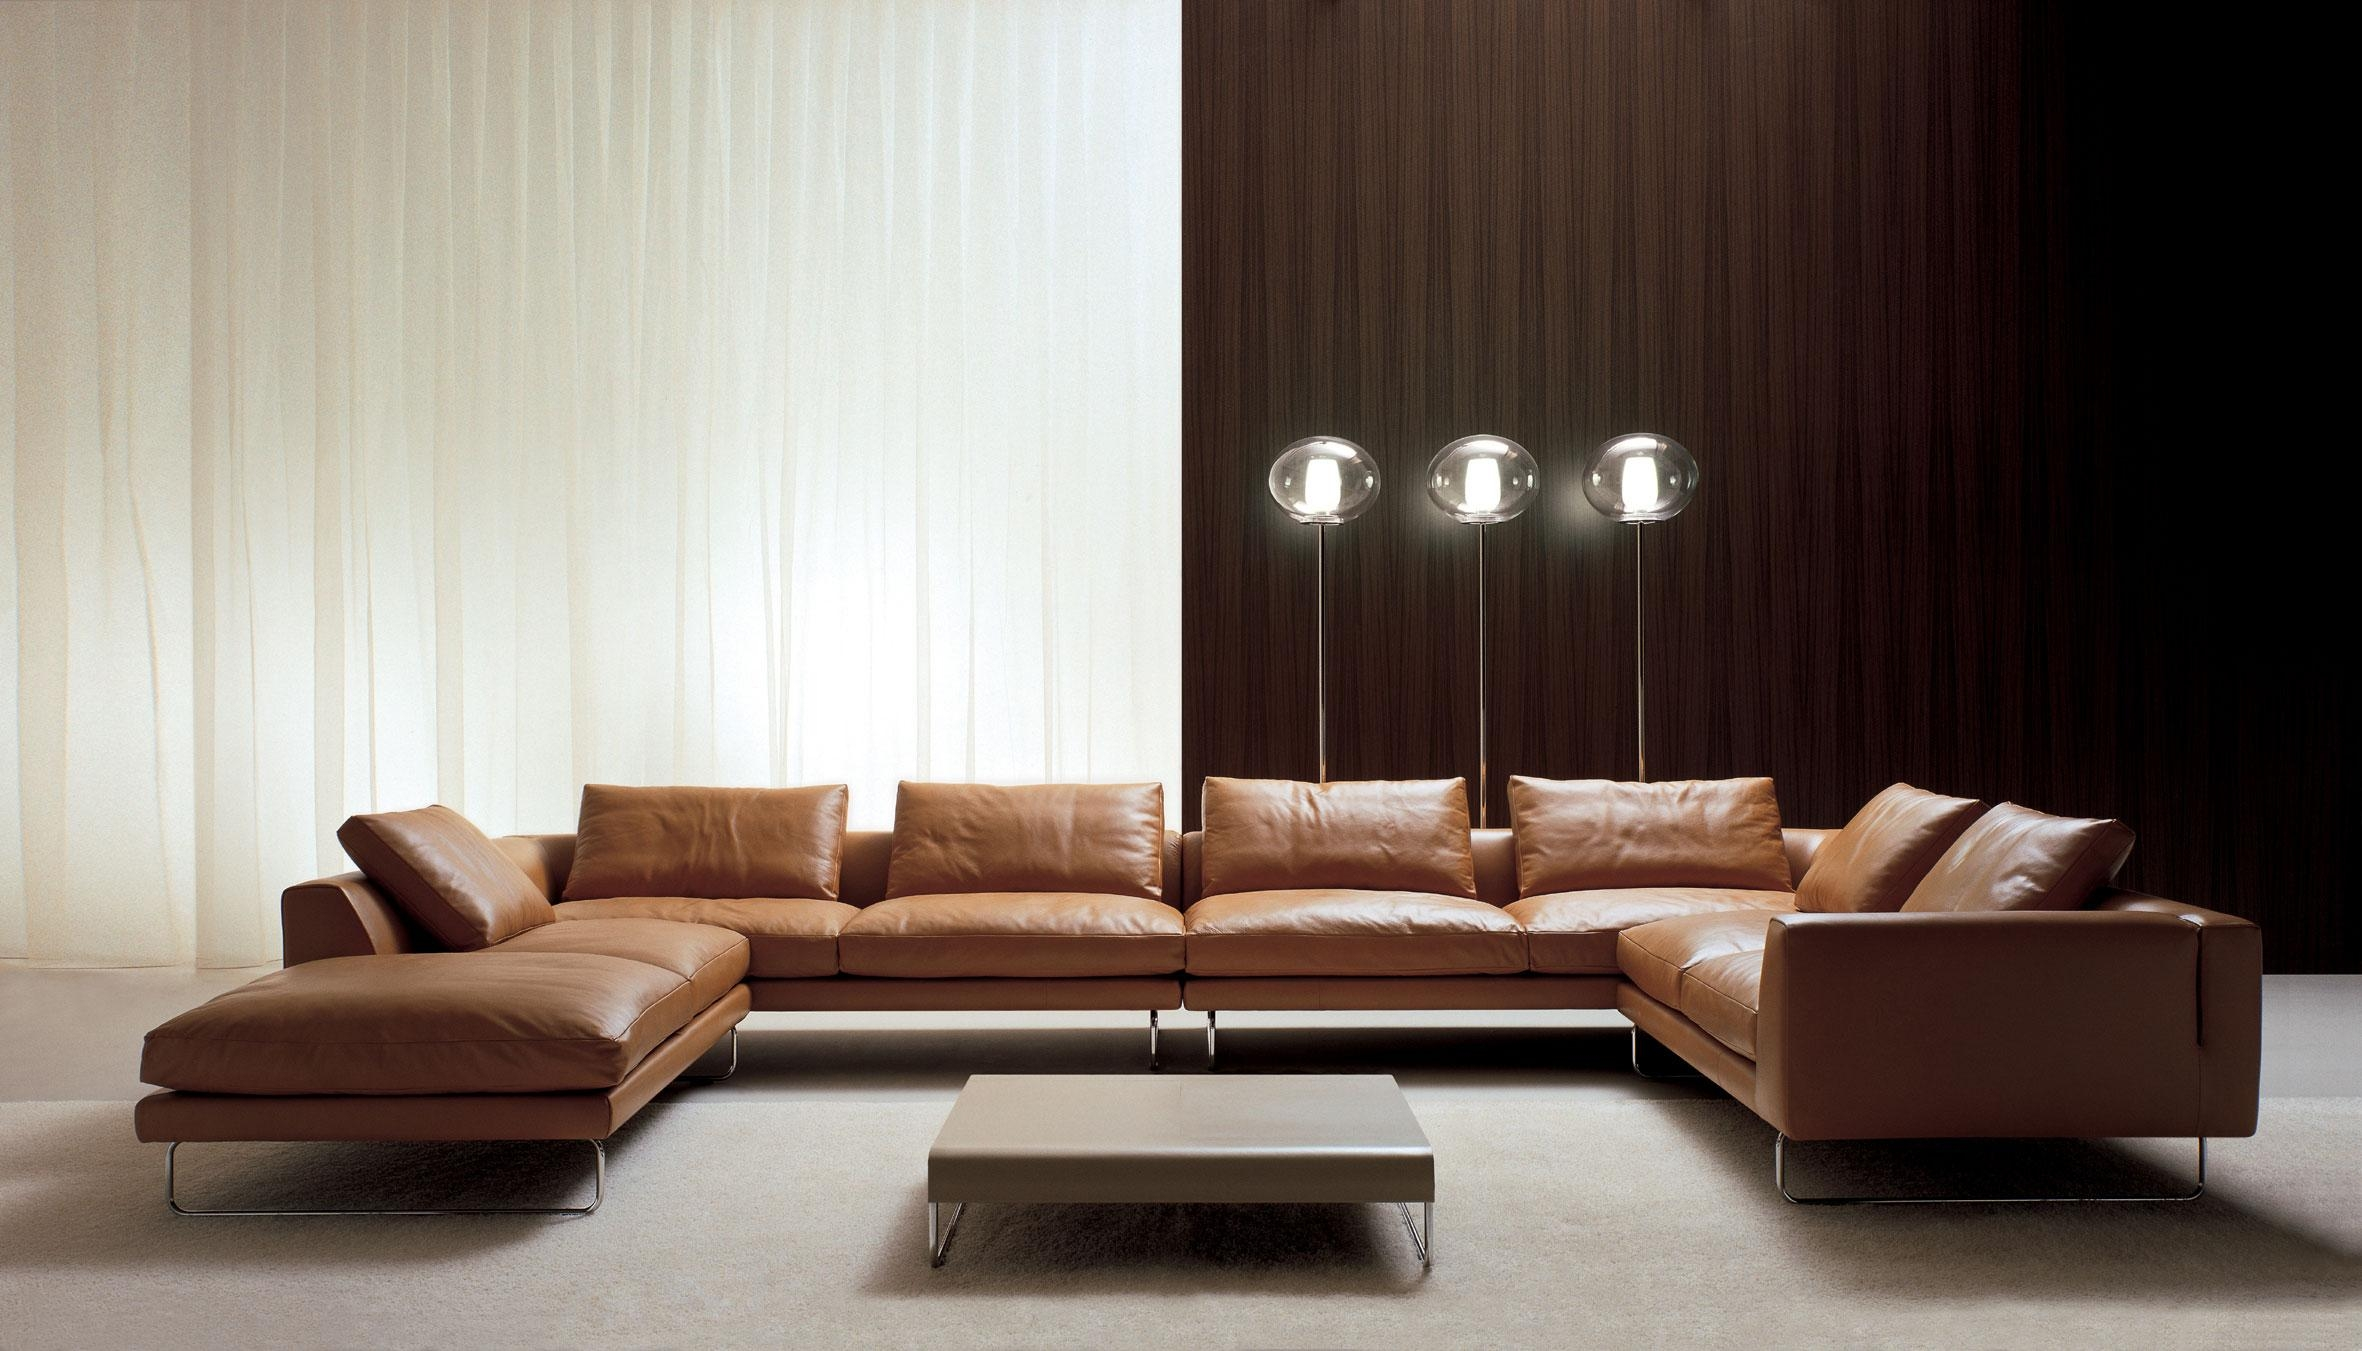 27 ~ Images Remarkable Italian Sofa Model Idea. Ambito.co in Leather Modular Sectional Sofas